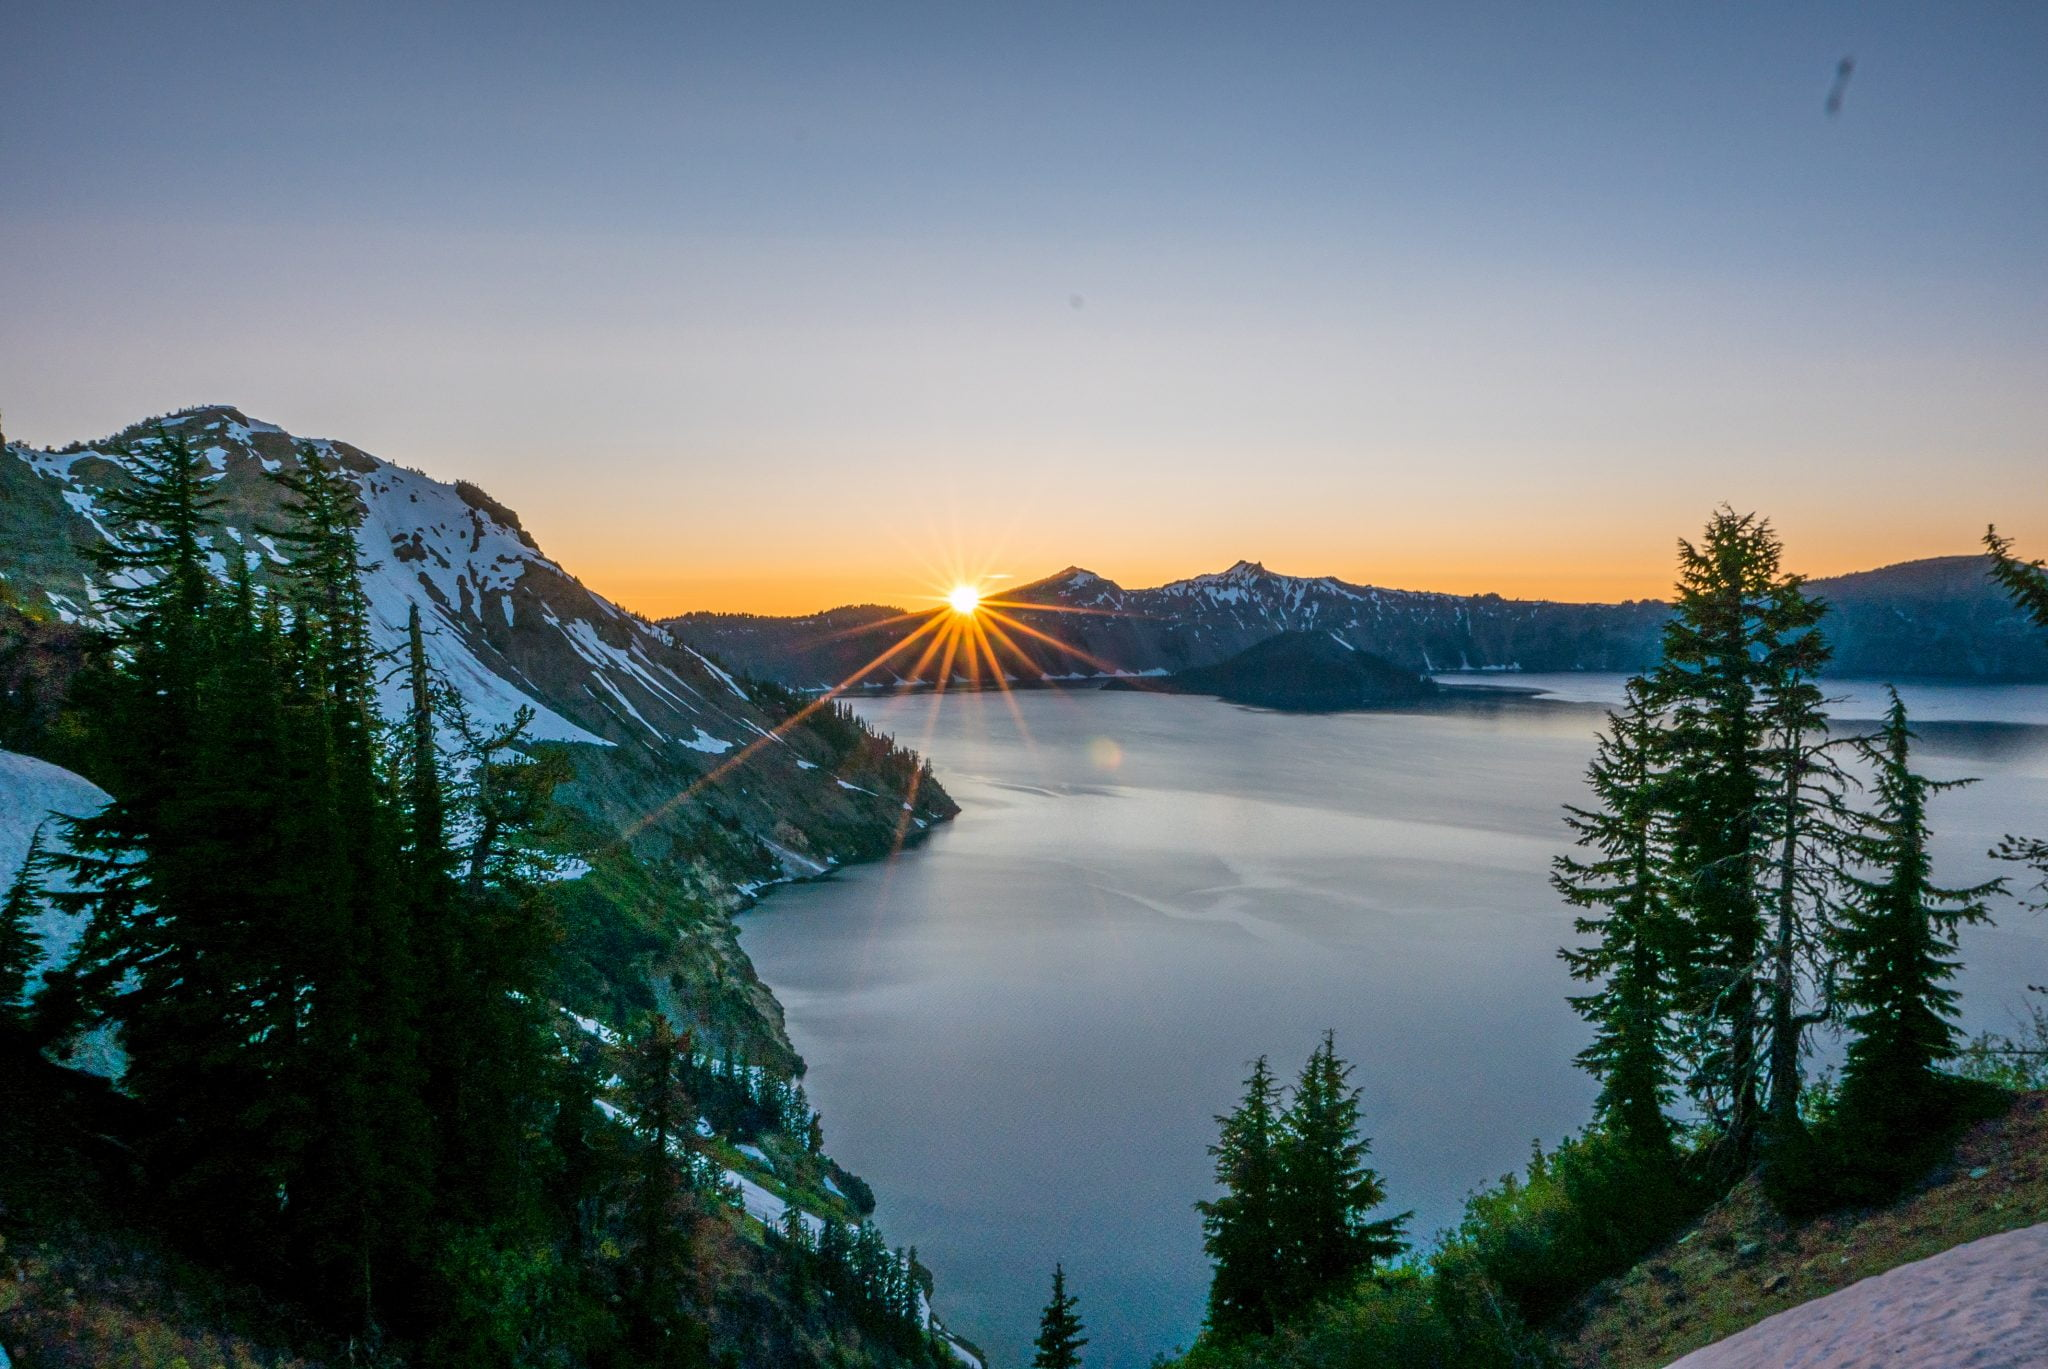 Ultimate adventure travel camera - The RX10 - Crater Lake